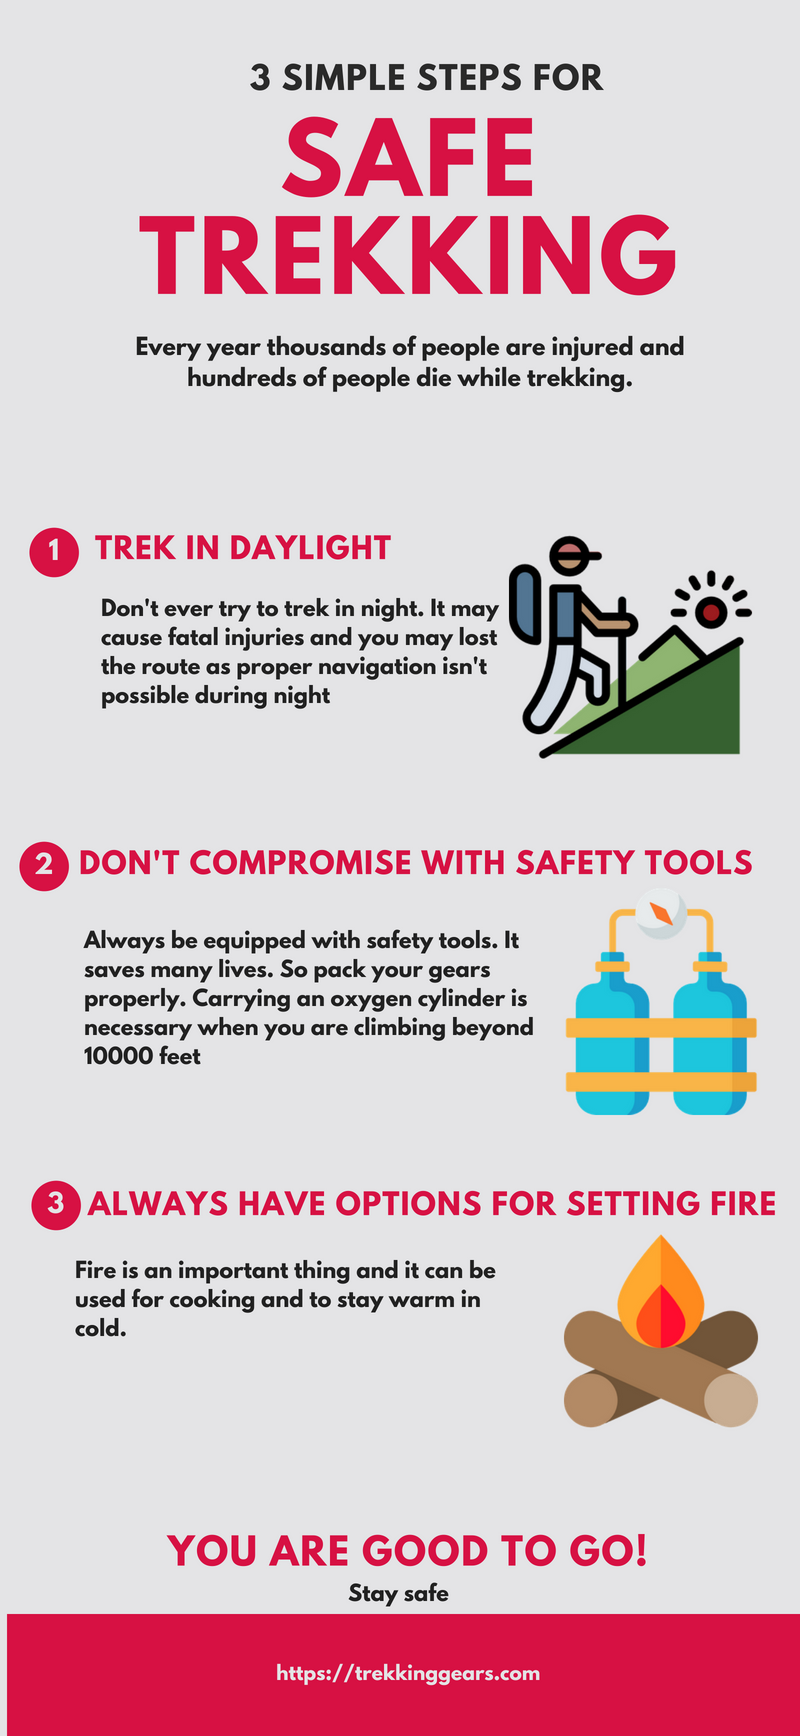 Tips for Trekking